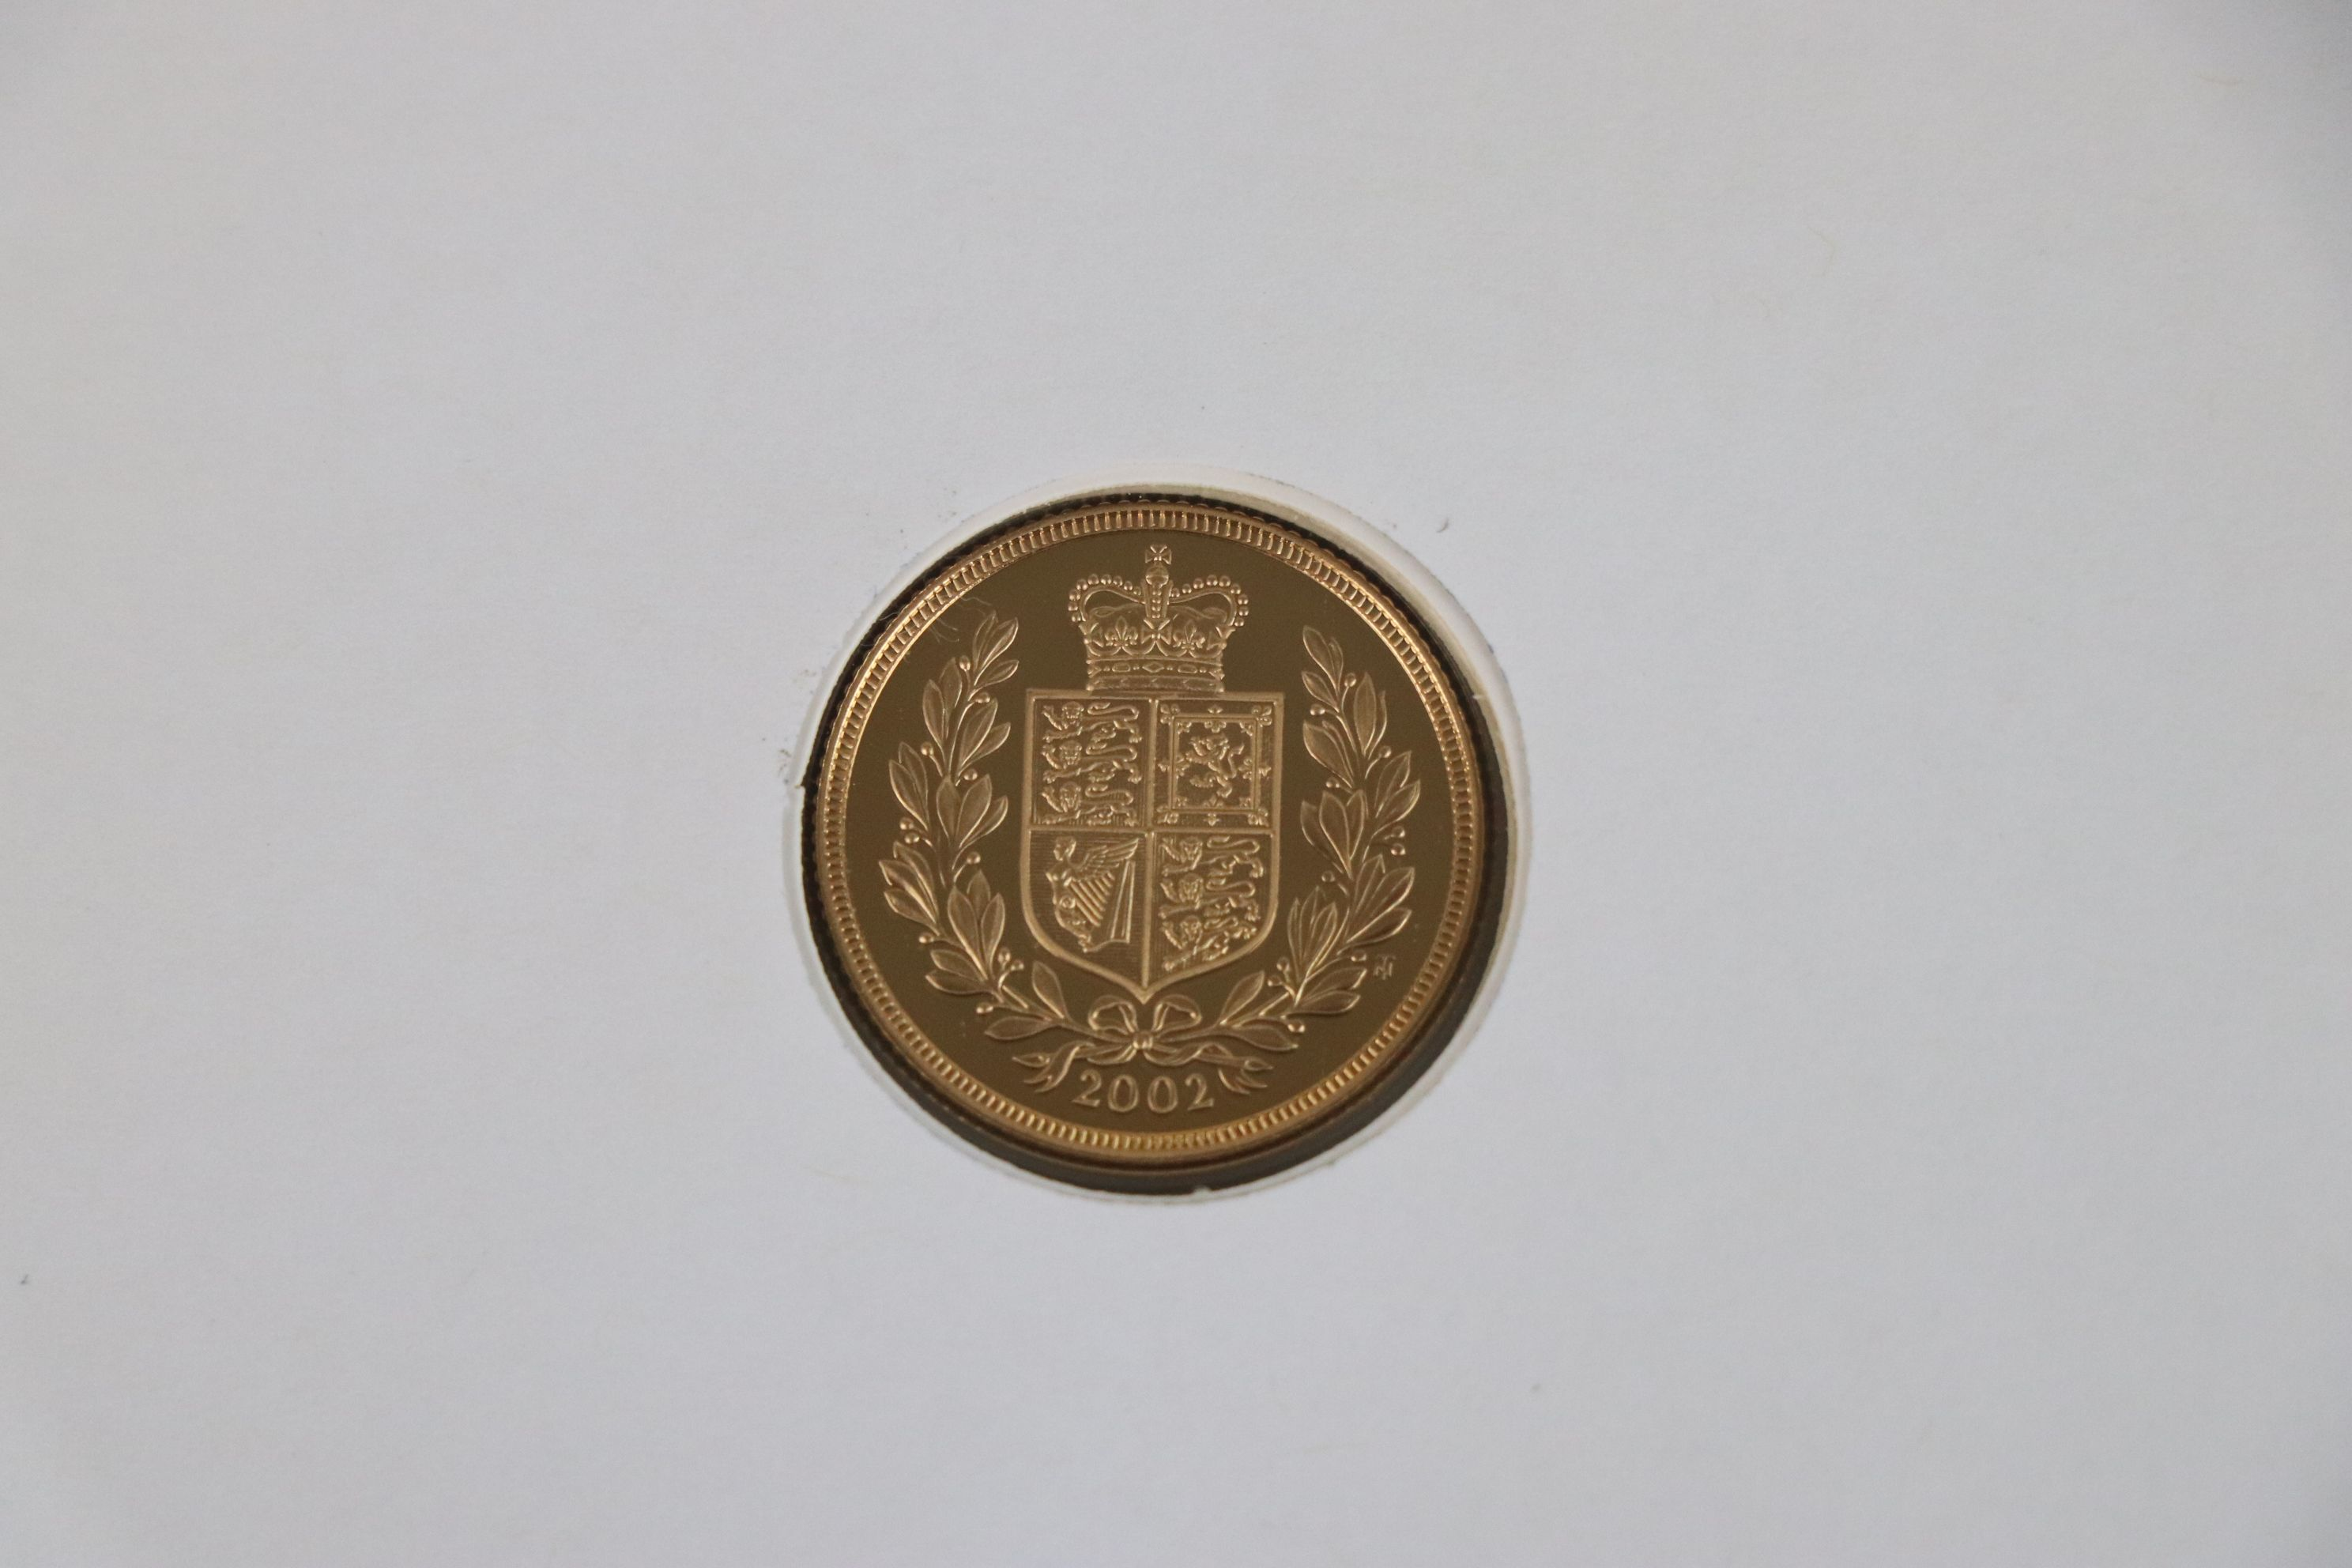 A 2002 Great Britain gold proof Sovereign coin cover. - Image 4 of 4